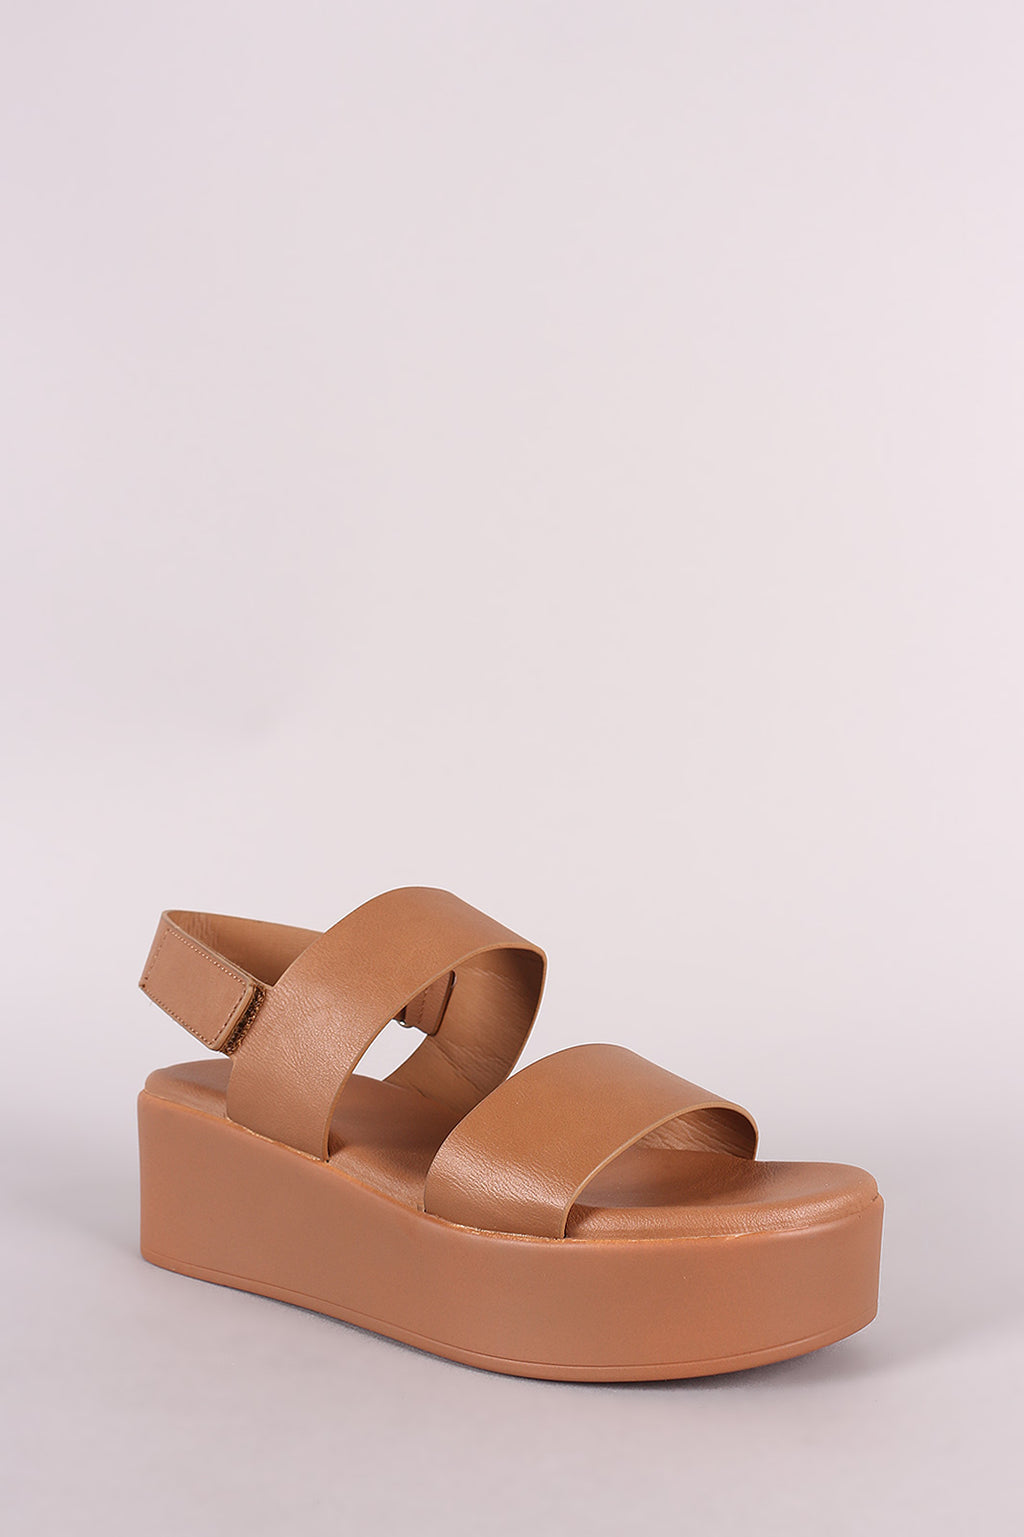 Bamboo Bonus-01m Tan Double Band Open Toe Slingback Flatform Wedge